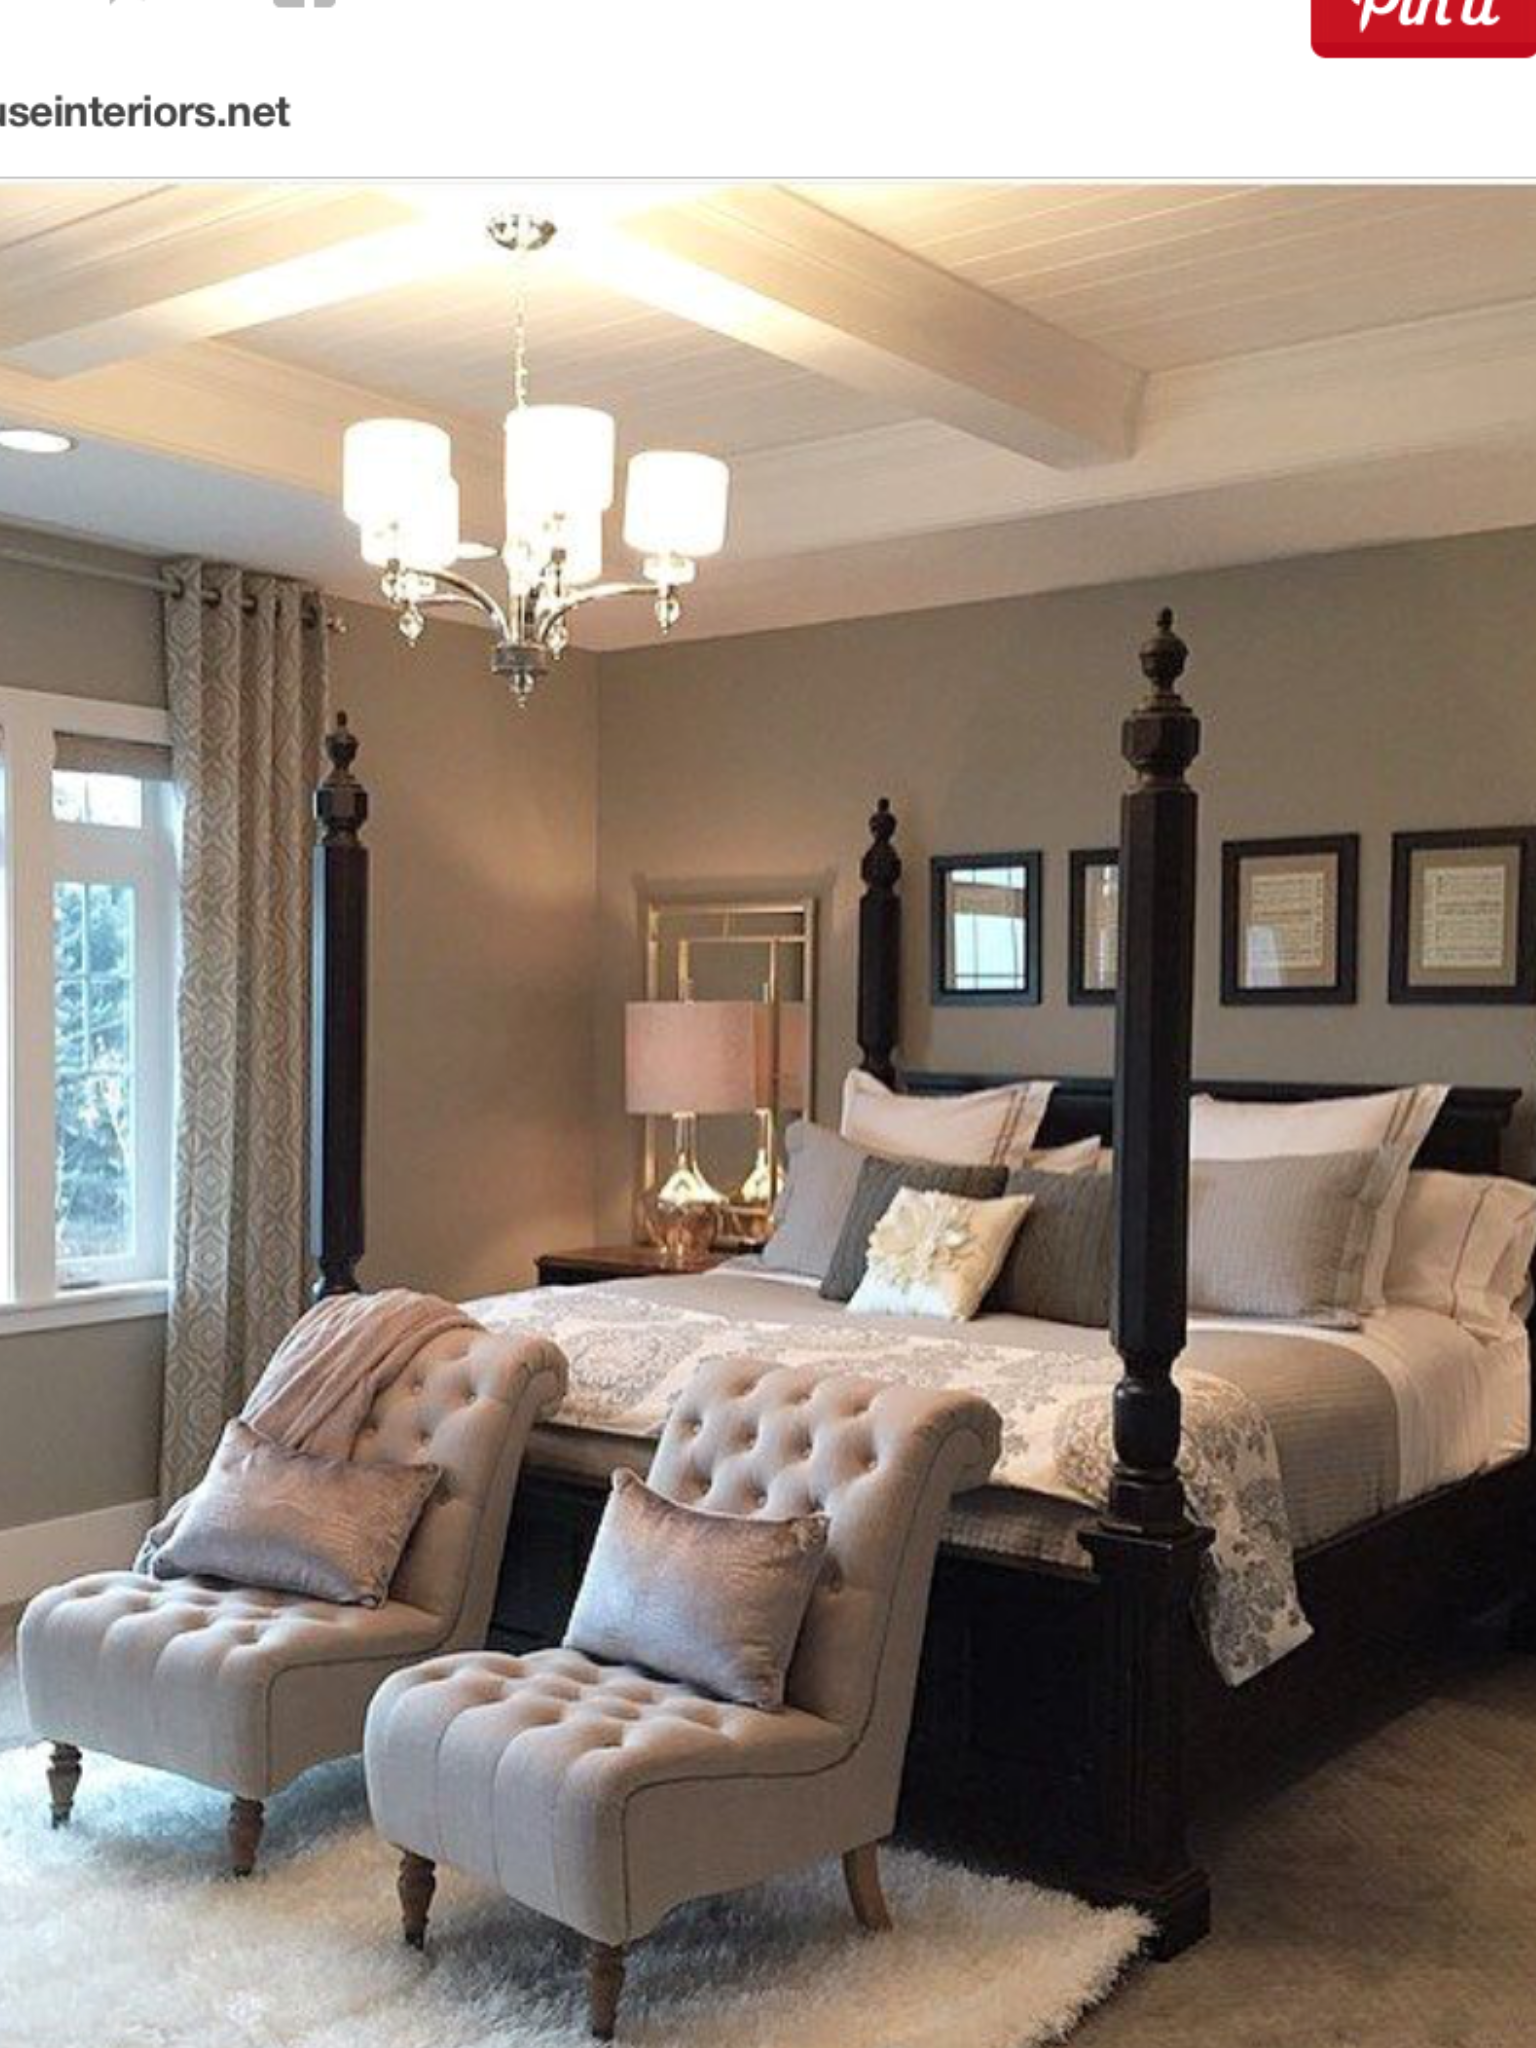 Pin by green eyes on within 4 walls pinterest wall colors walls and bedrooms Master bedroom with grey furniture